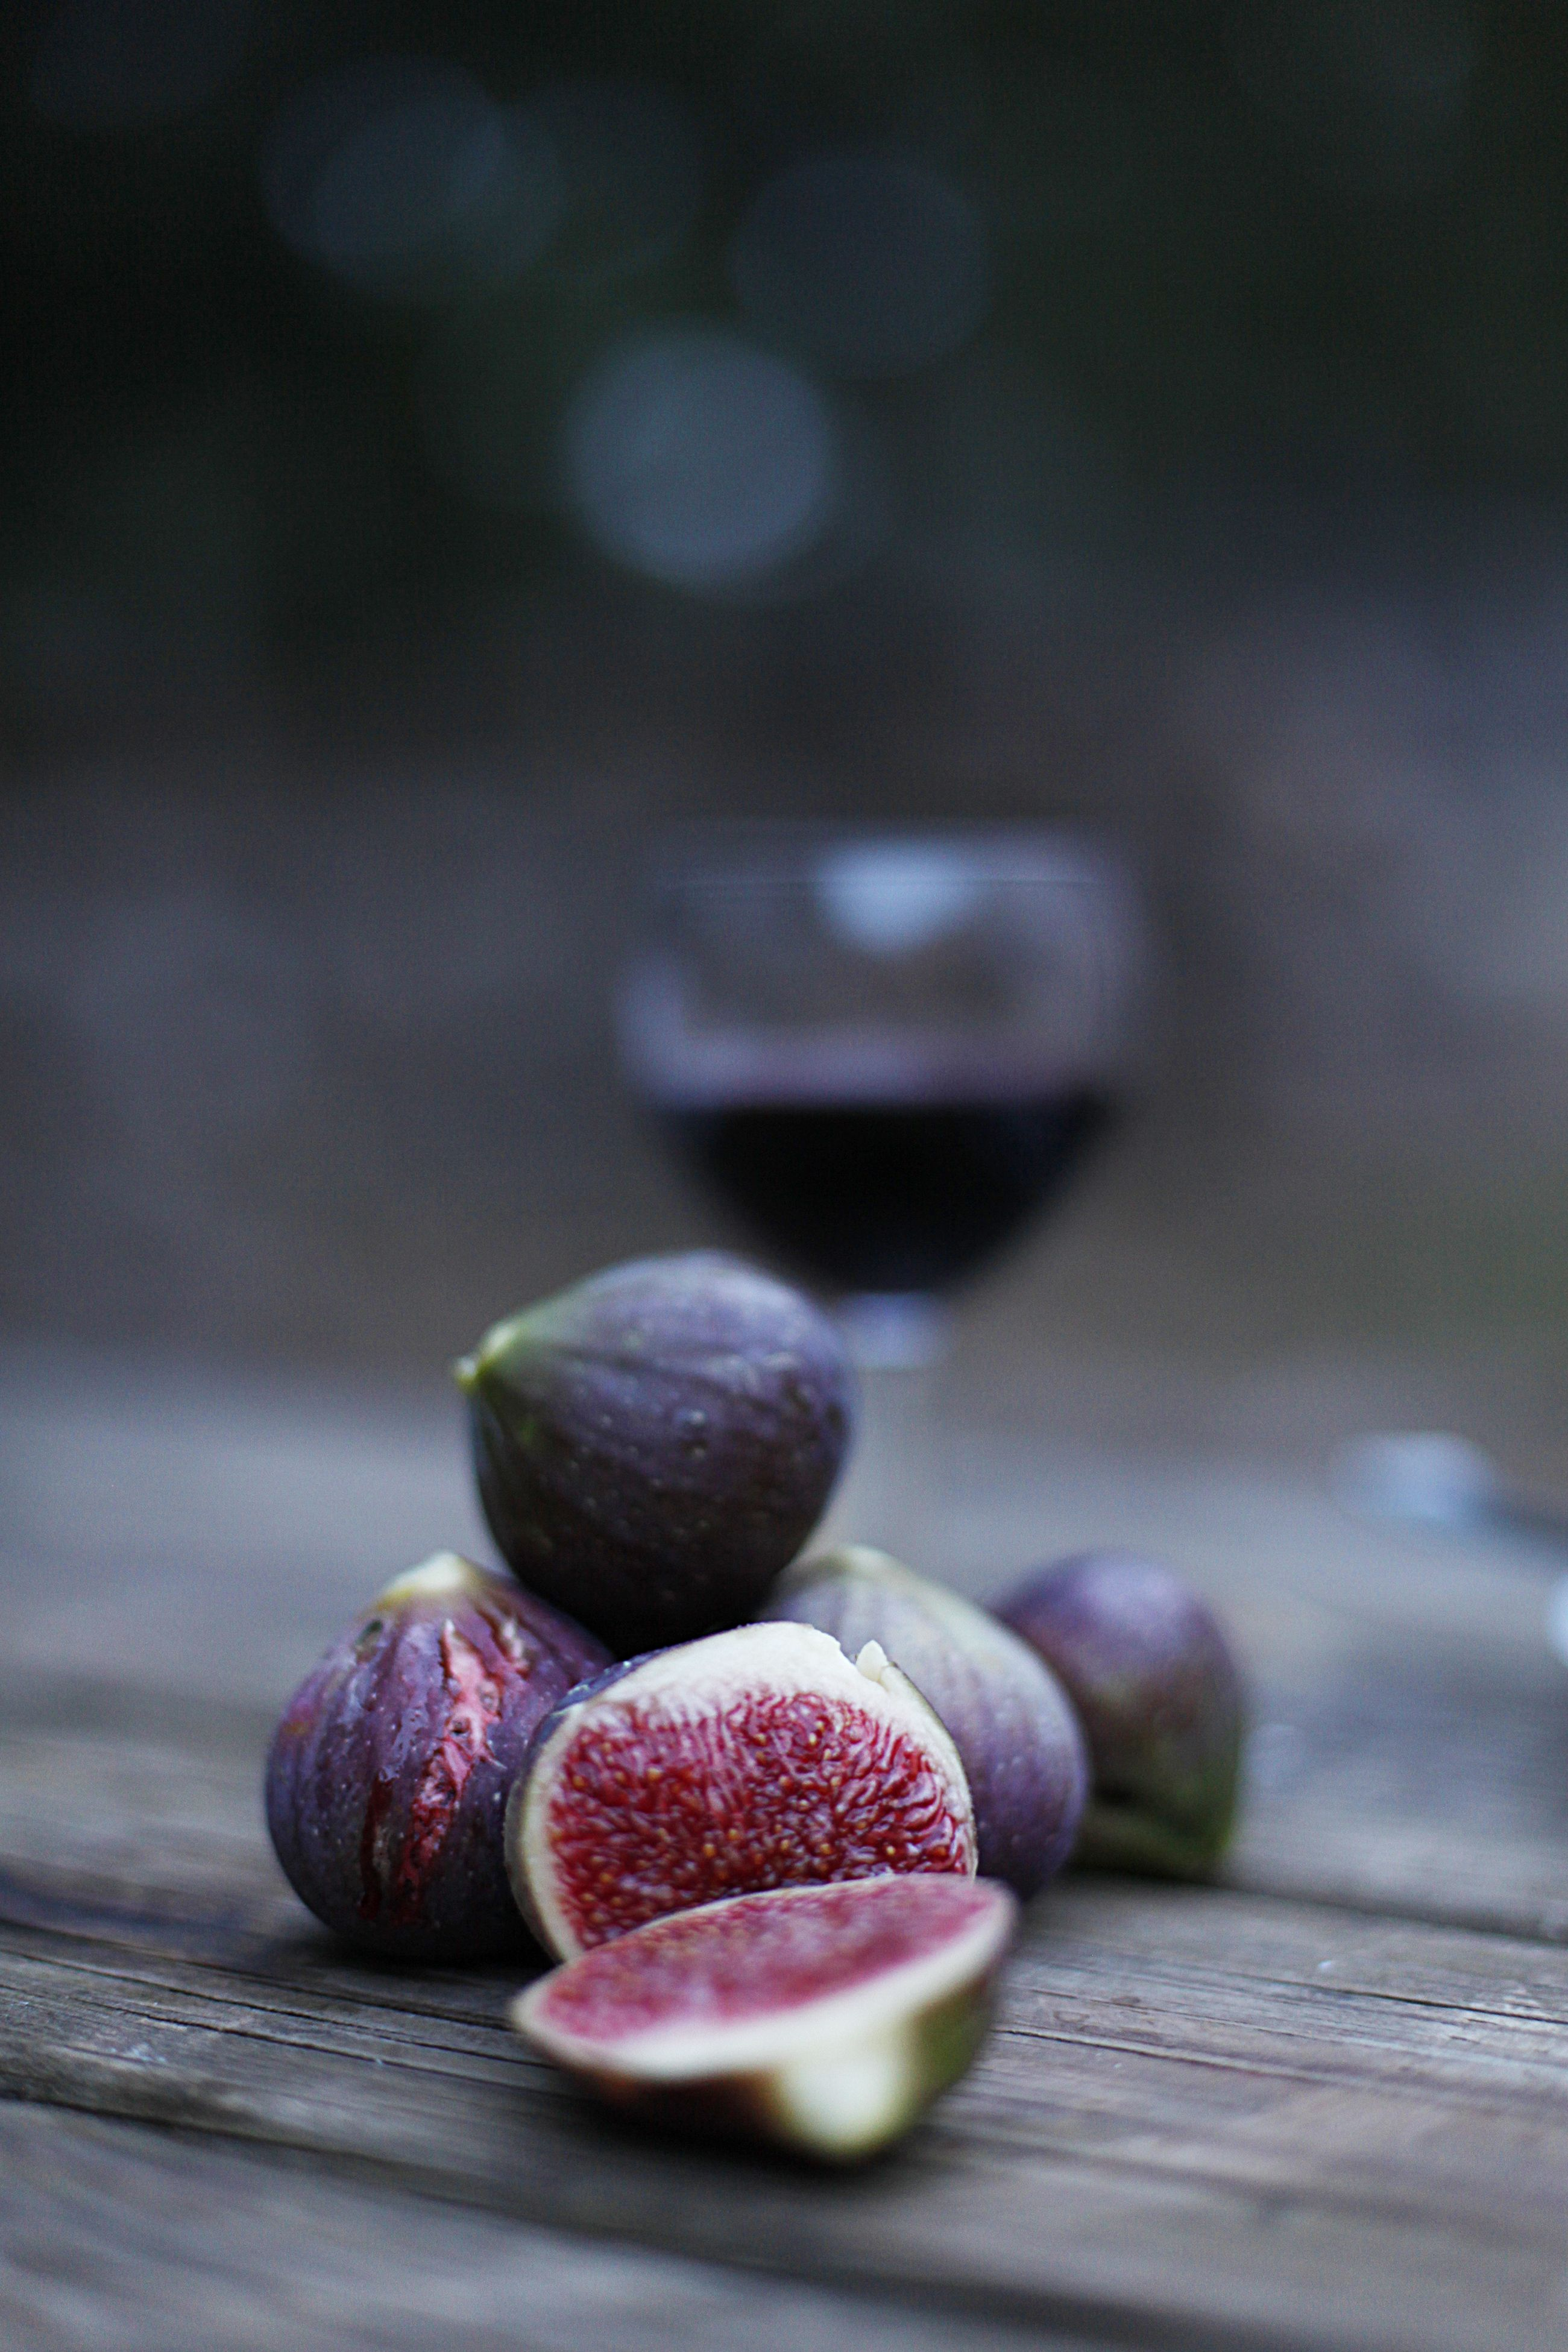 And for desert...simple but delicious ripe figs from the south of France